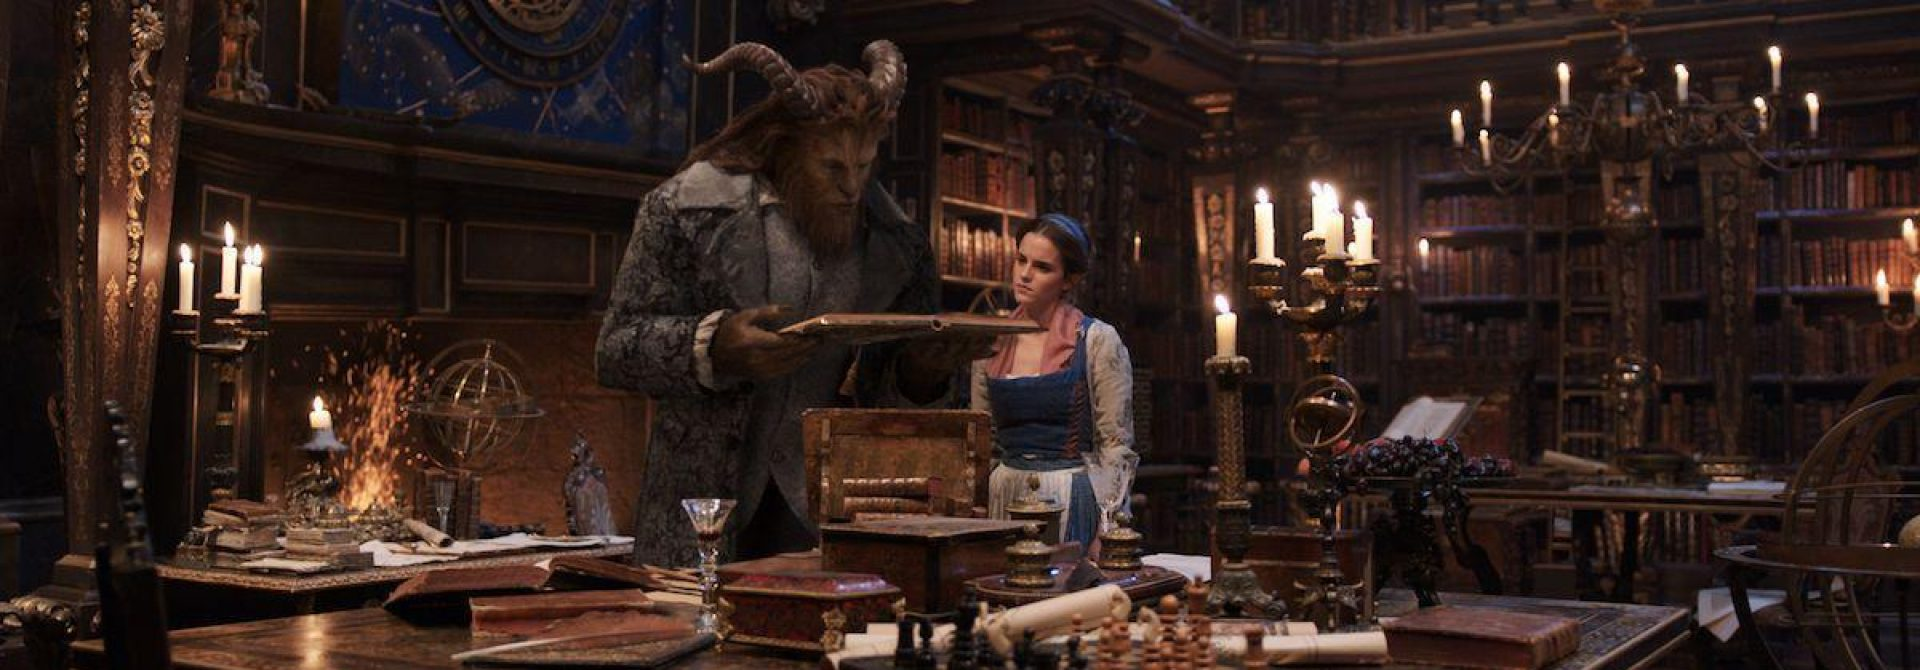 Beauty and the Beast: New Images for the Film